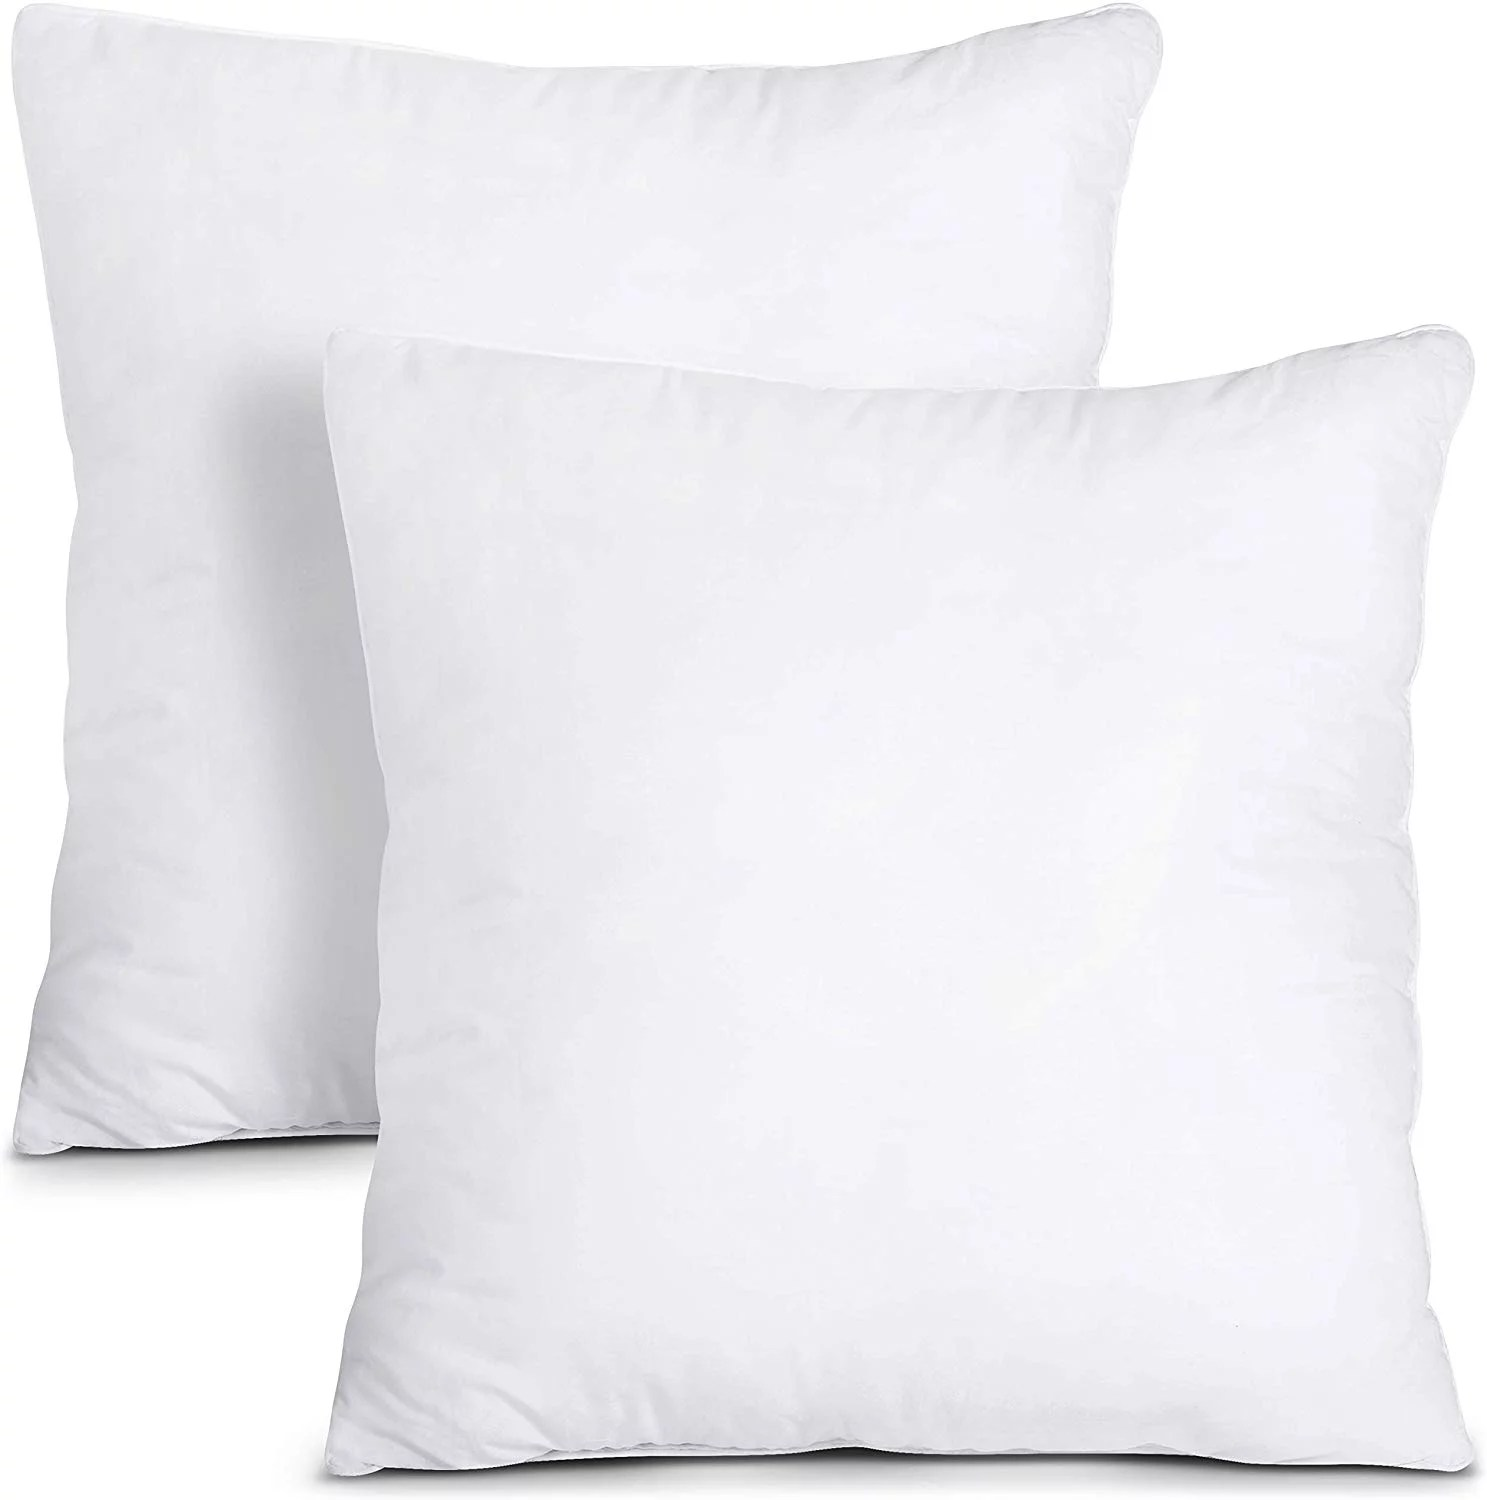 utopia bedding throw pillows insert pack of 2 white 28 x 28 inches bed and couch pillows indoor decorative pillows